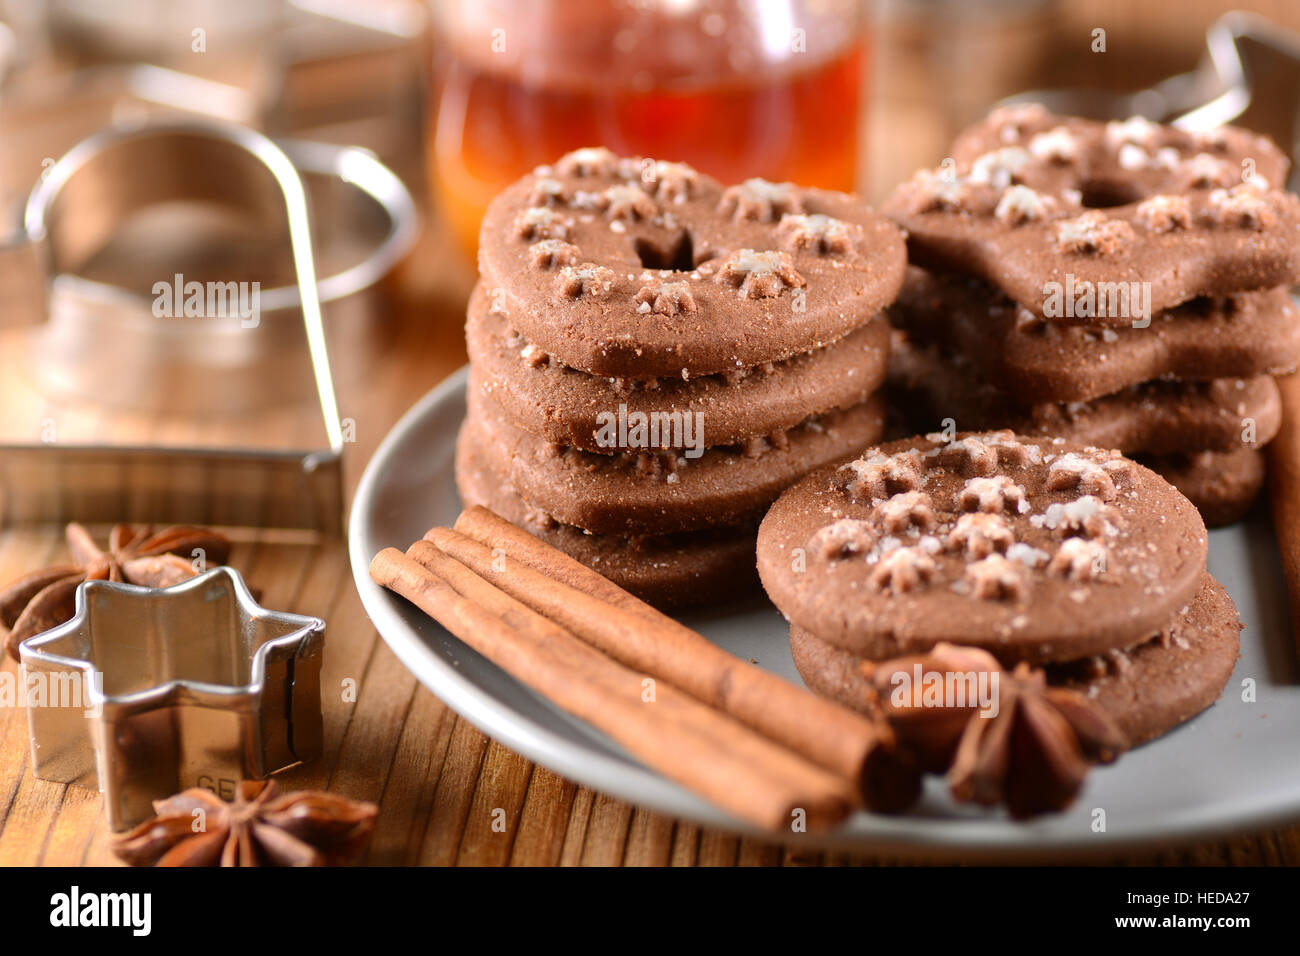 homemade chocolate cookies with ingredients around - Stock Image